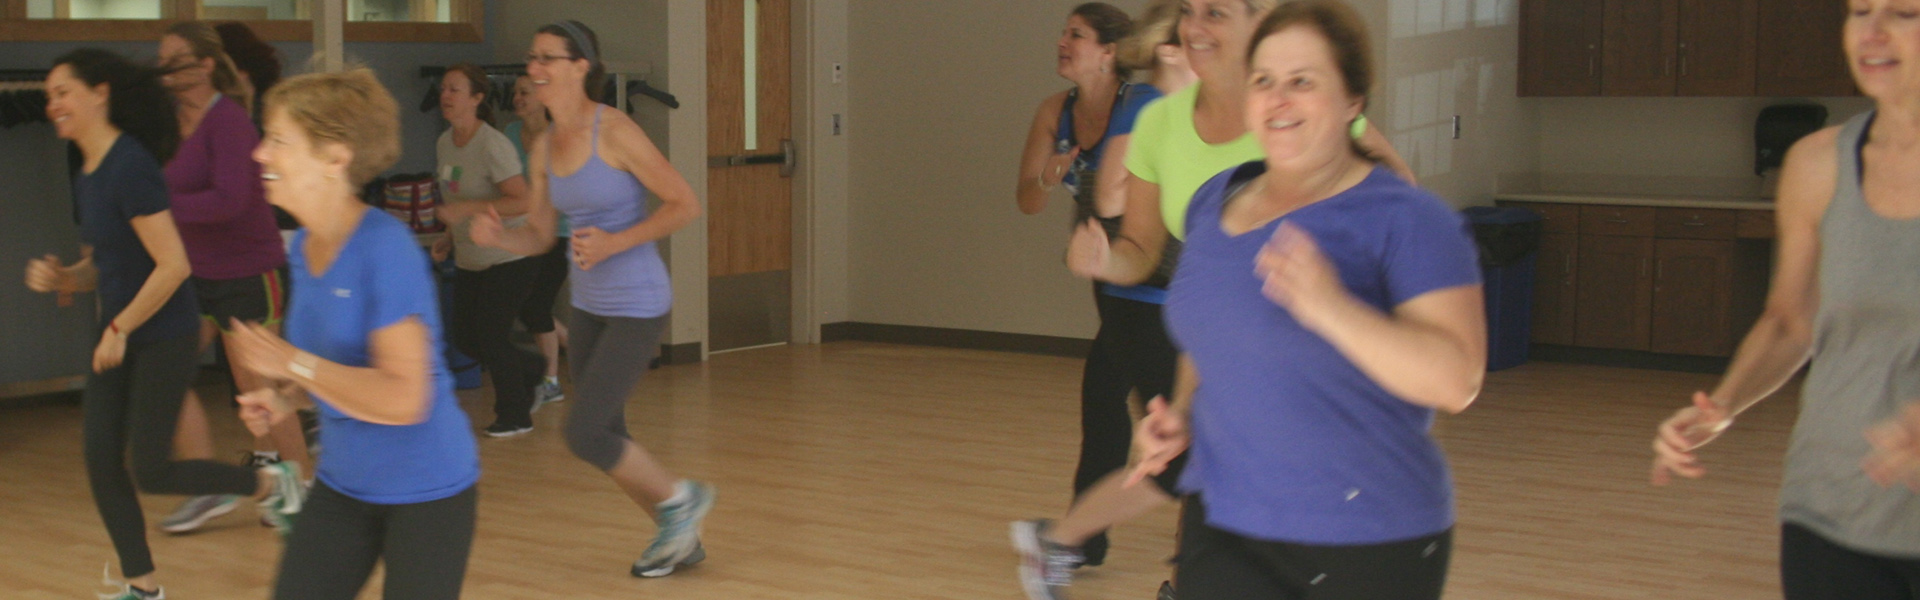 Personal Euphoria - Interval Training Classes in CT